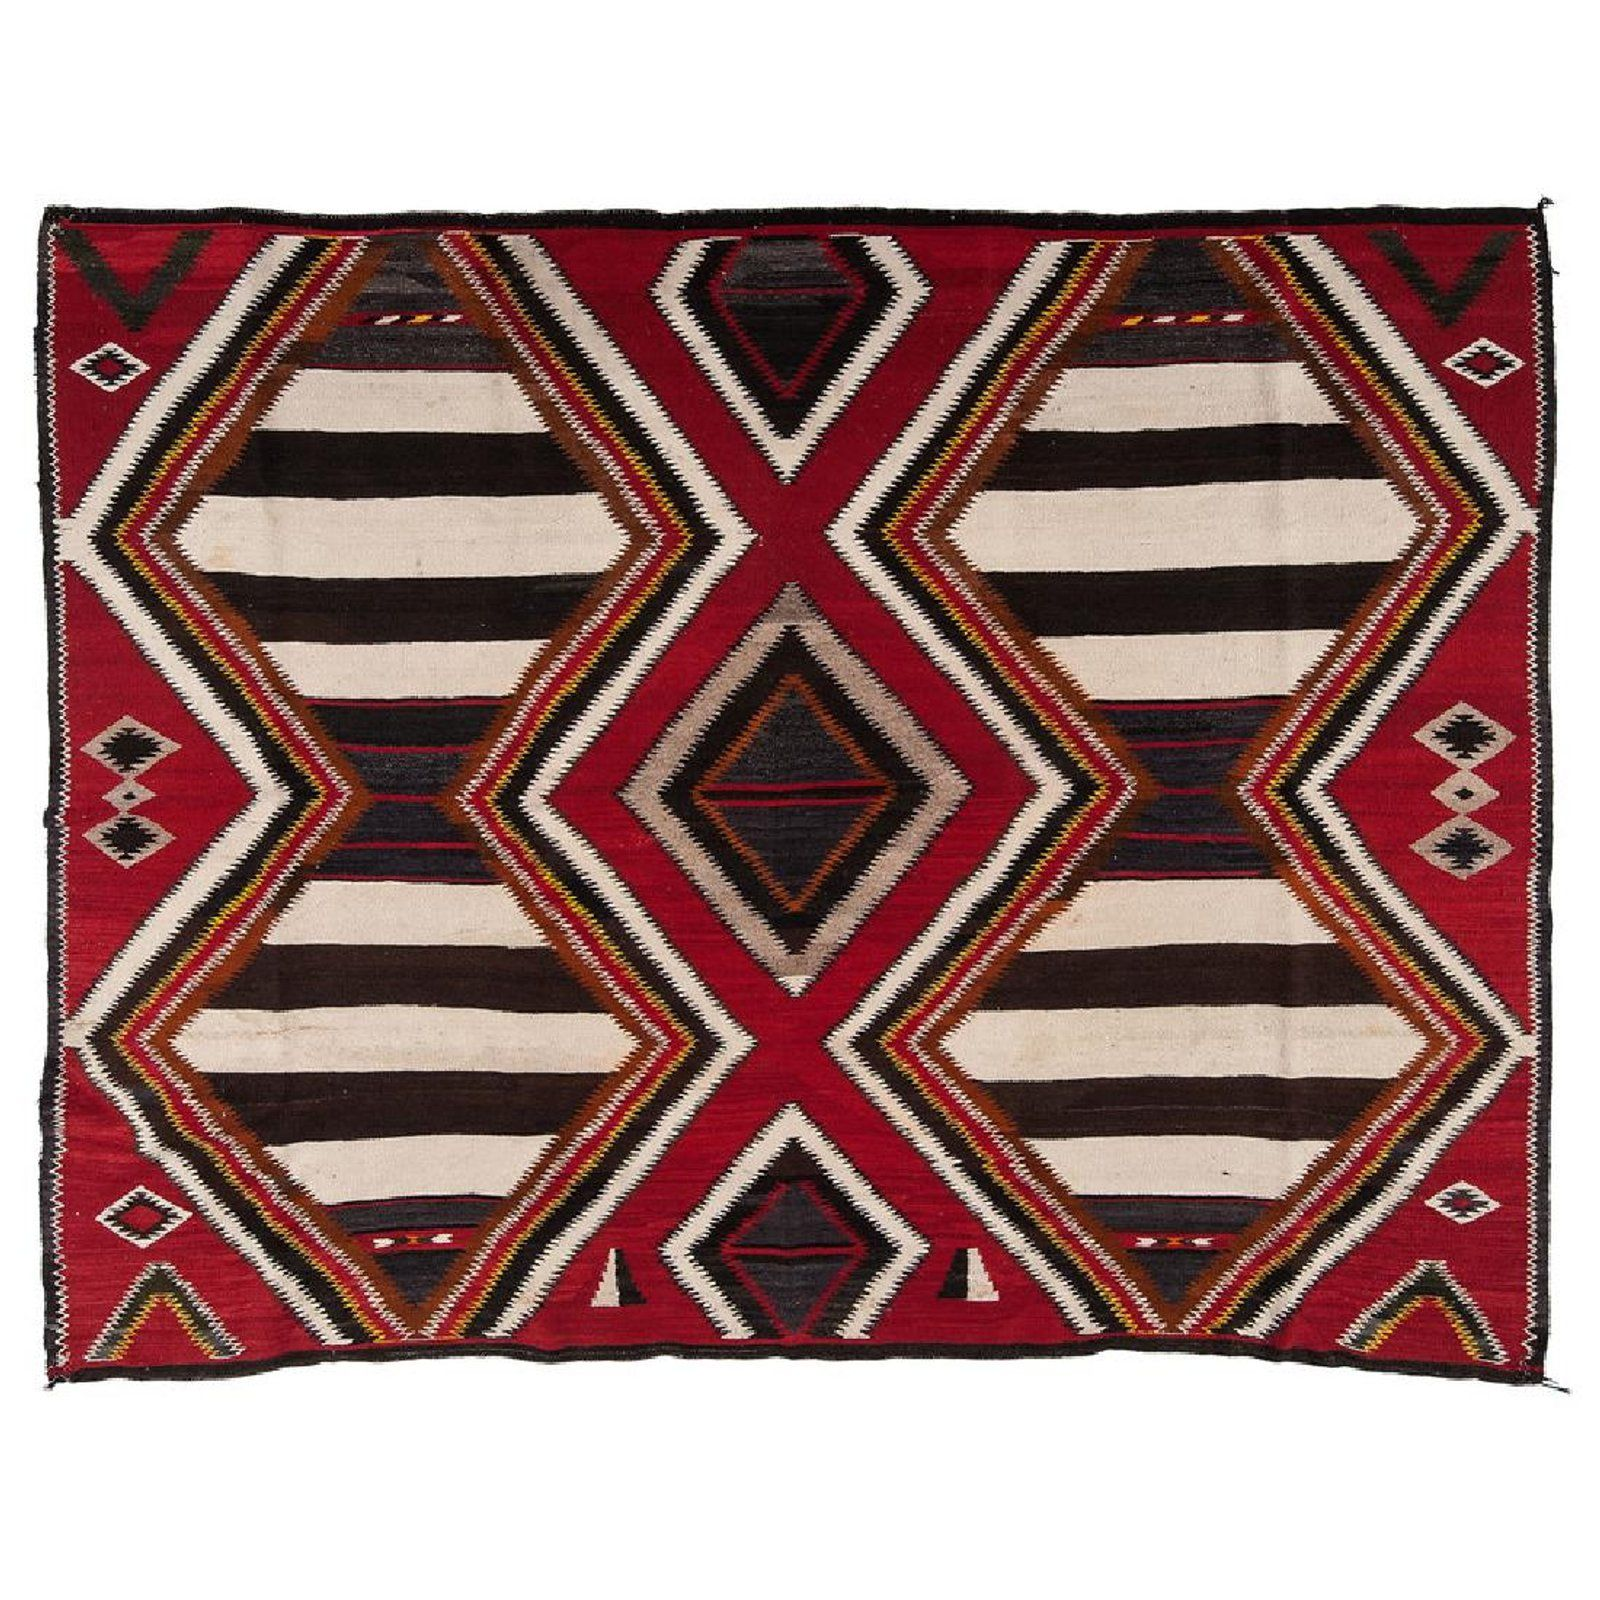 Navajo Red Mesa Outline Third Phase Chief S Blanket Apr 06 2018 Cowan S Auctions In Oh In 2020 Western Art American Indian Decor Navajo